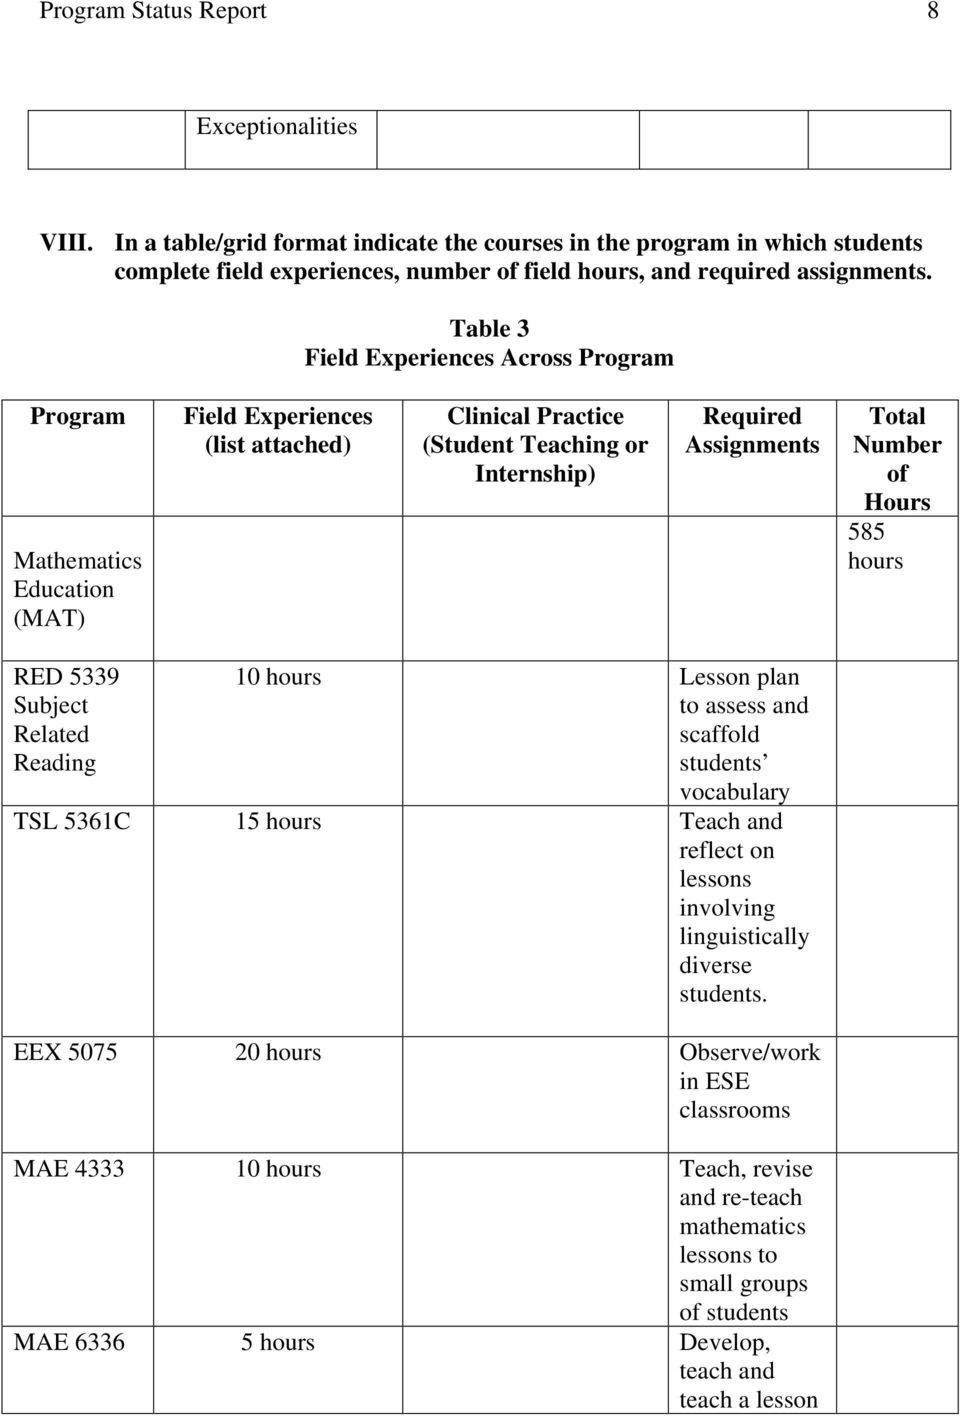 Table 3 Field Experiences Across Program Program Education (MAT) Field Experiences (list attached) Clinical Practice (Student Teaching or Internship) Required Assignments Total Number of Hours